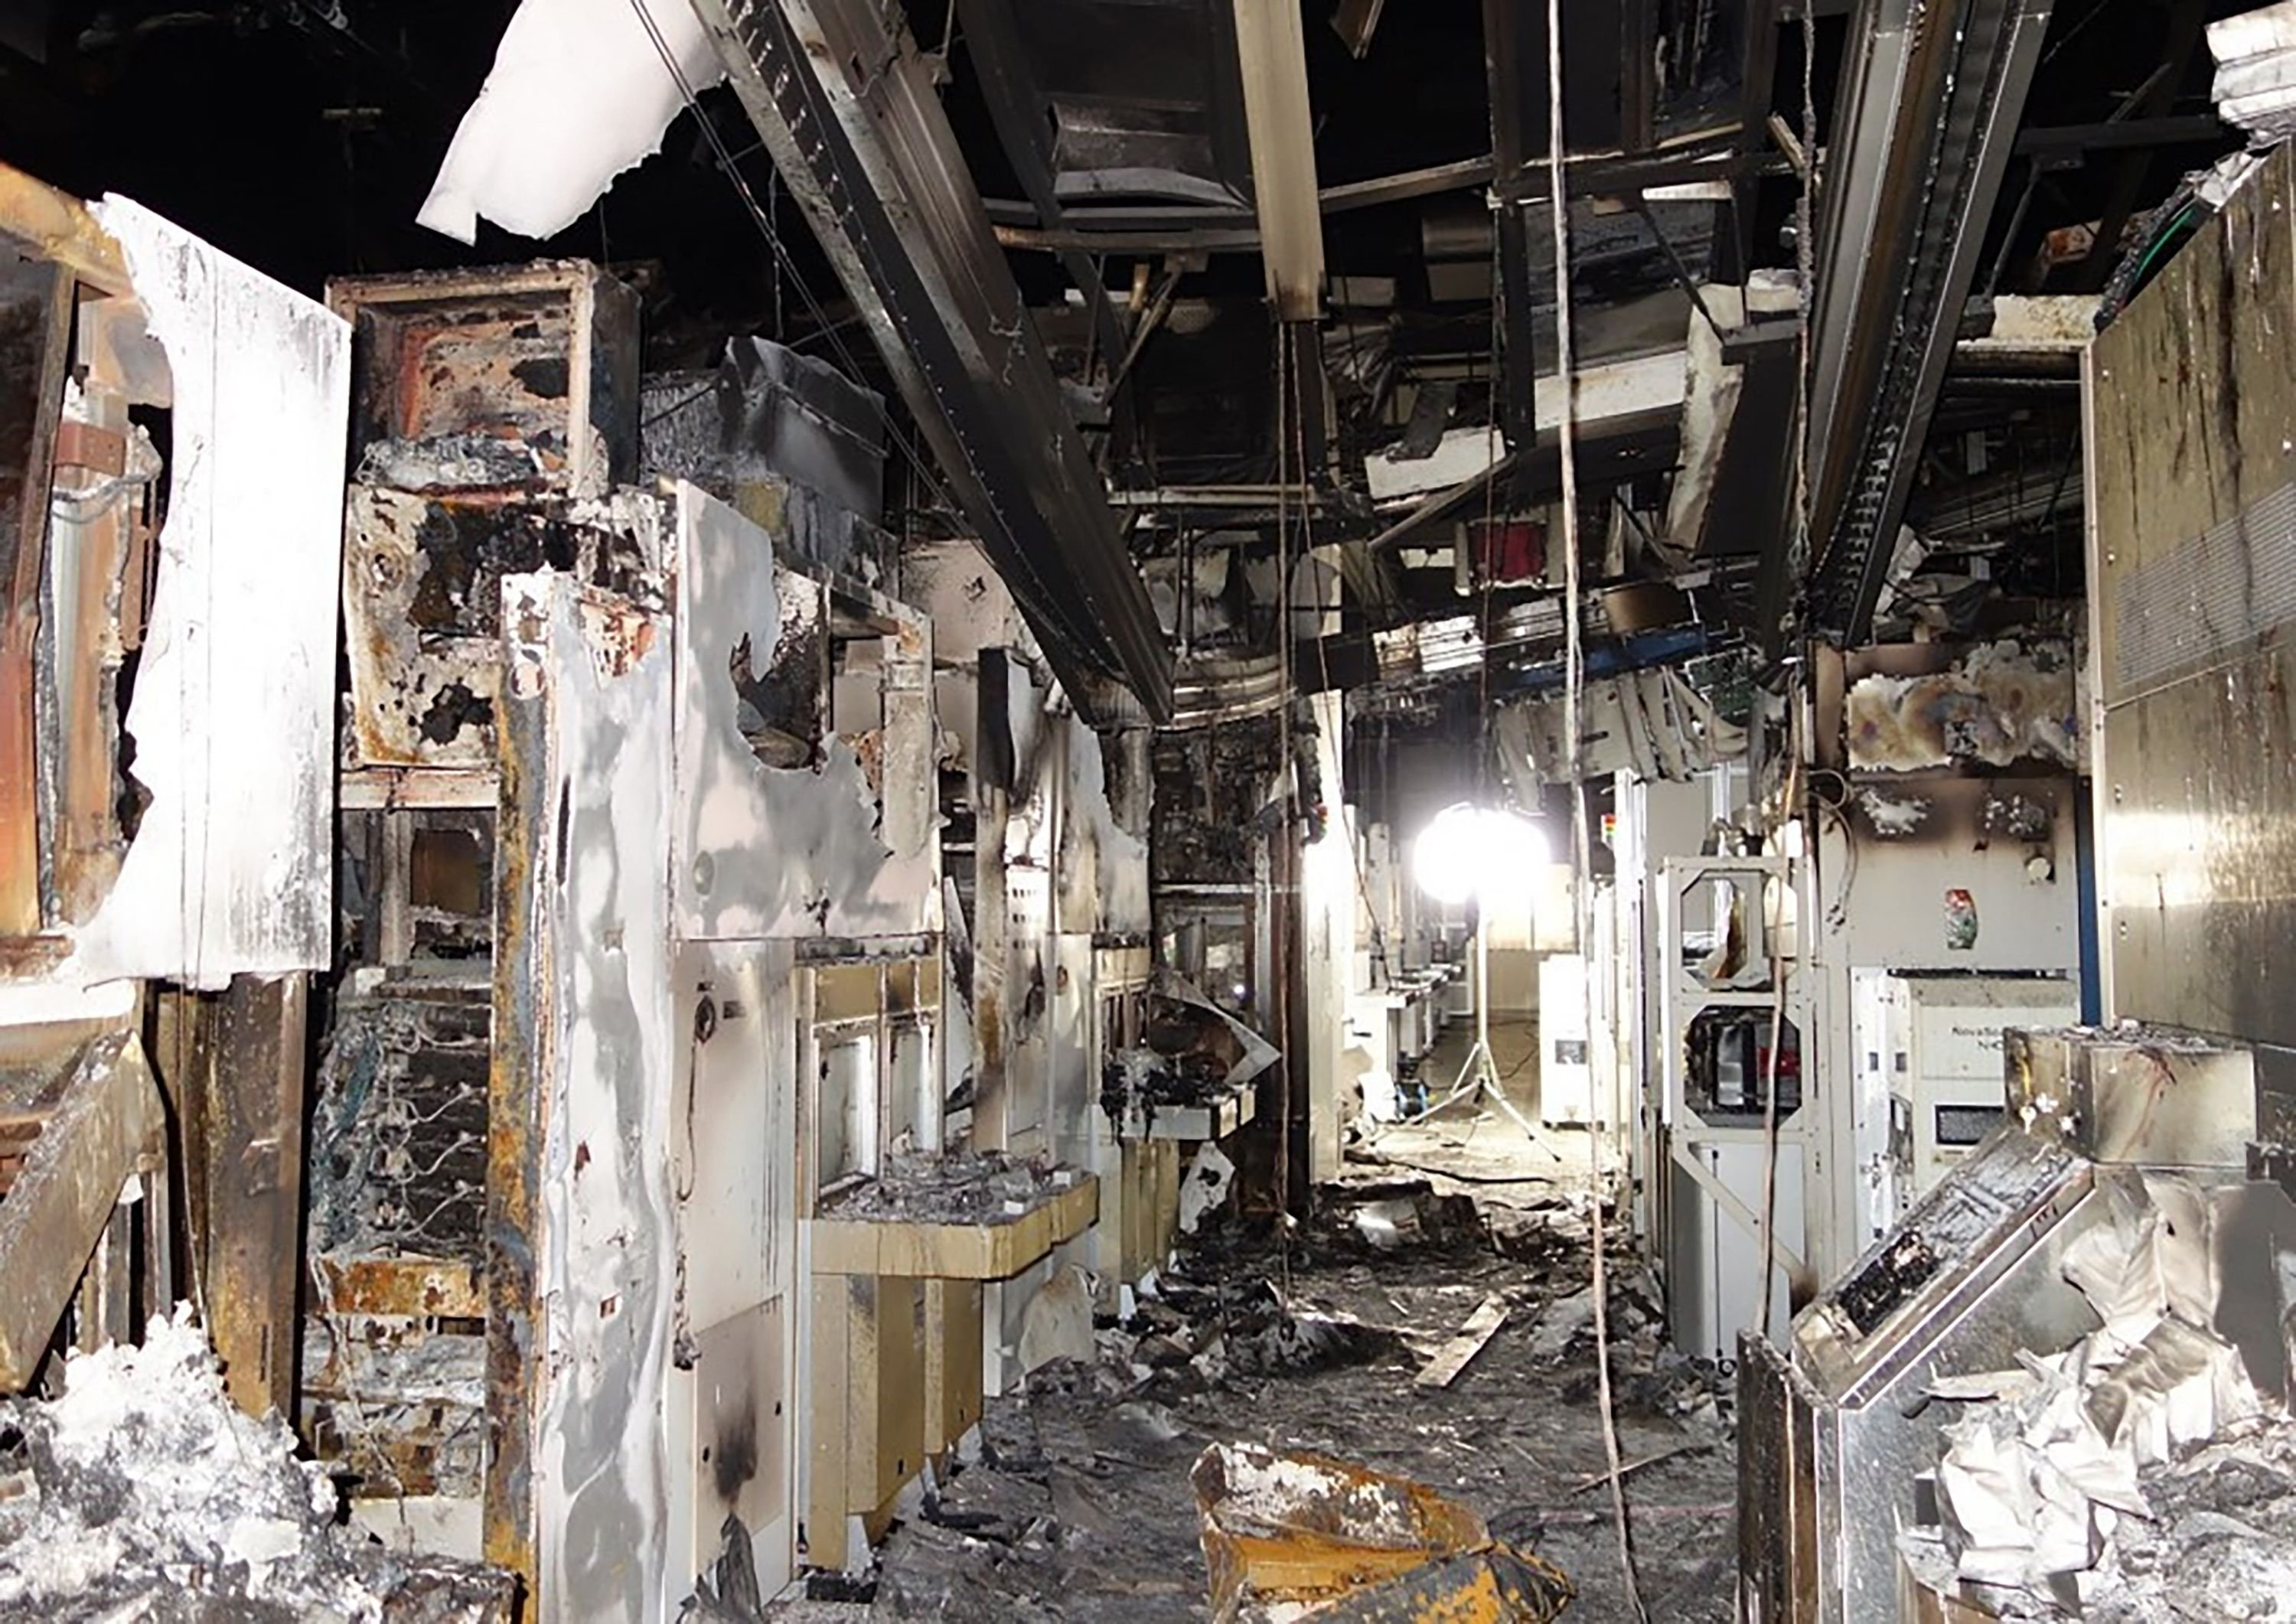 This undated handout photograph released on March 23, 2021 shows inside a company building after it was damaged in a fire in Hitachinaka, Ibaraki prefecture, northeastern Japan. (Jiji Press / Renesas Electronics via AFP)